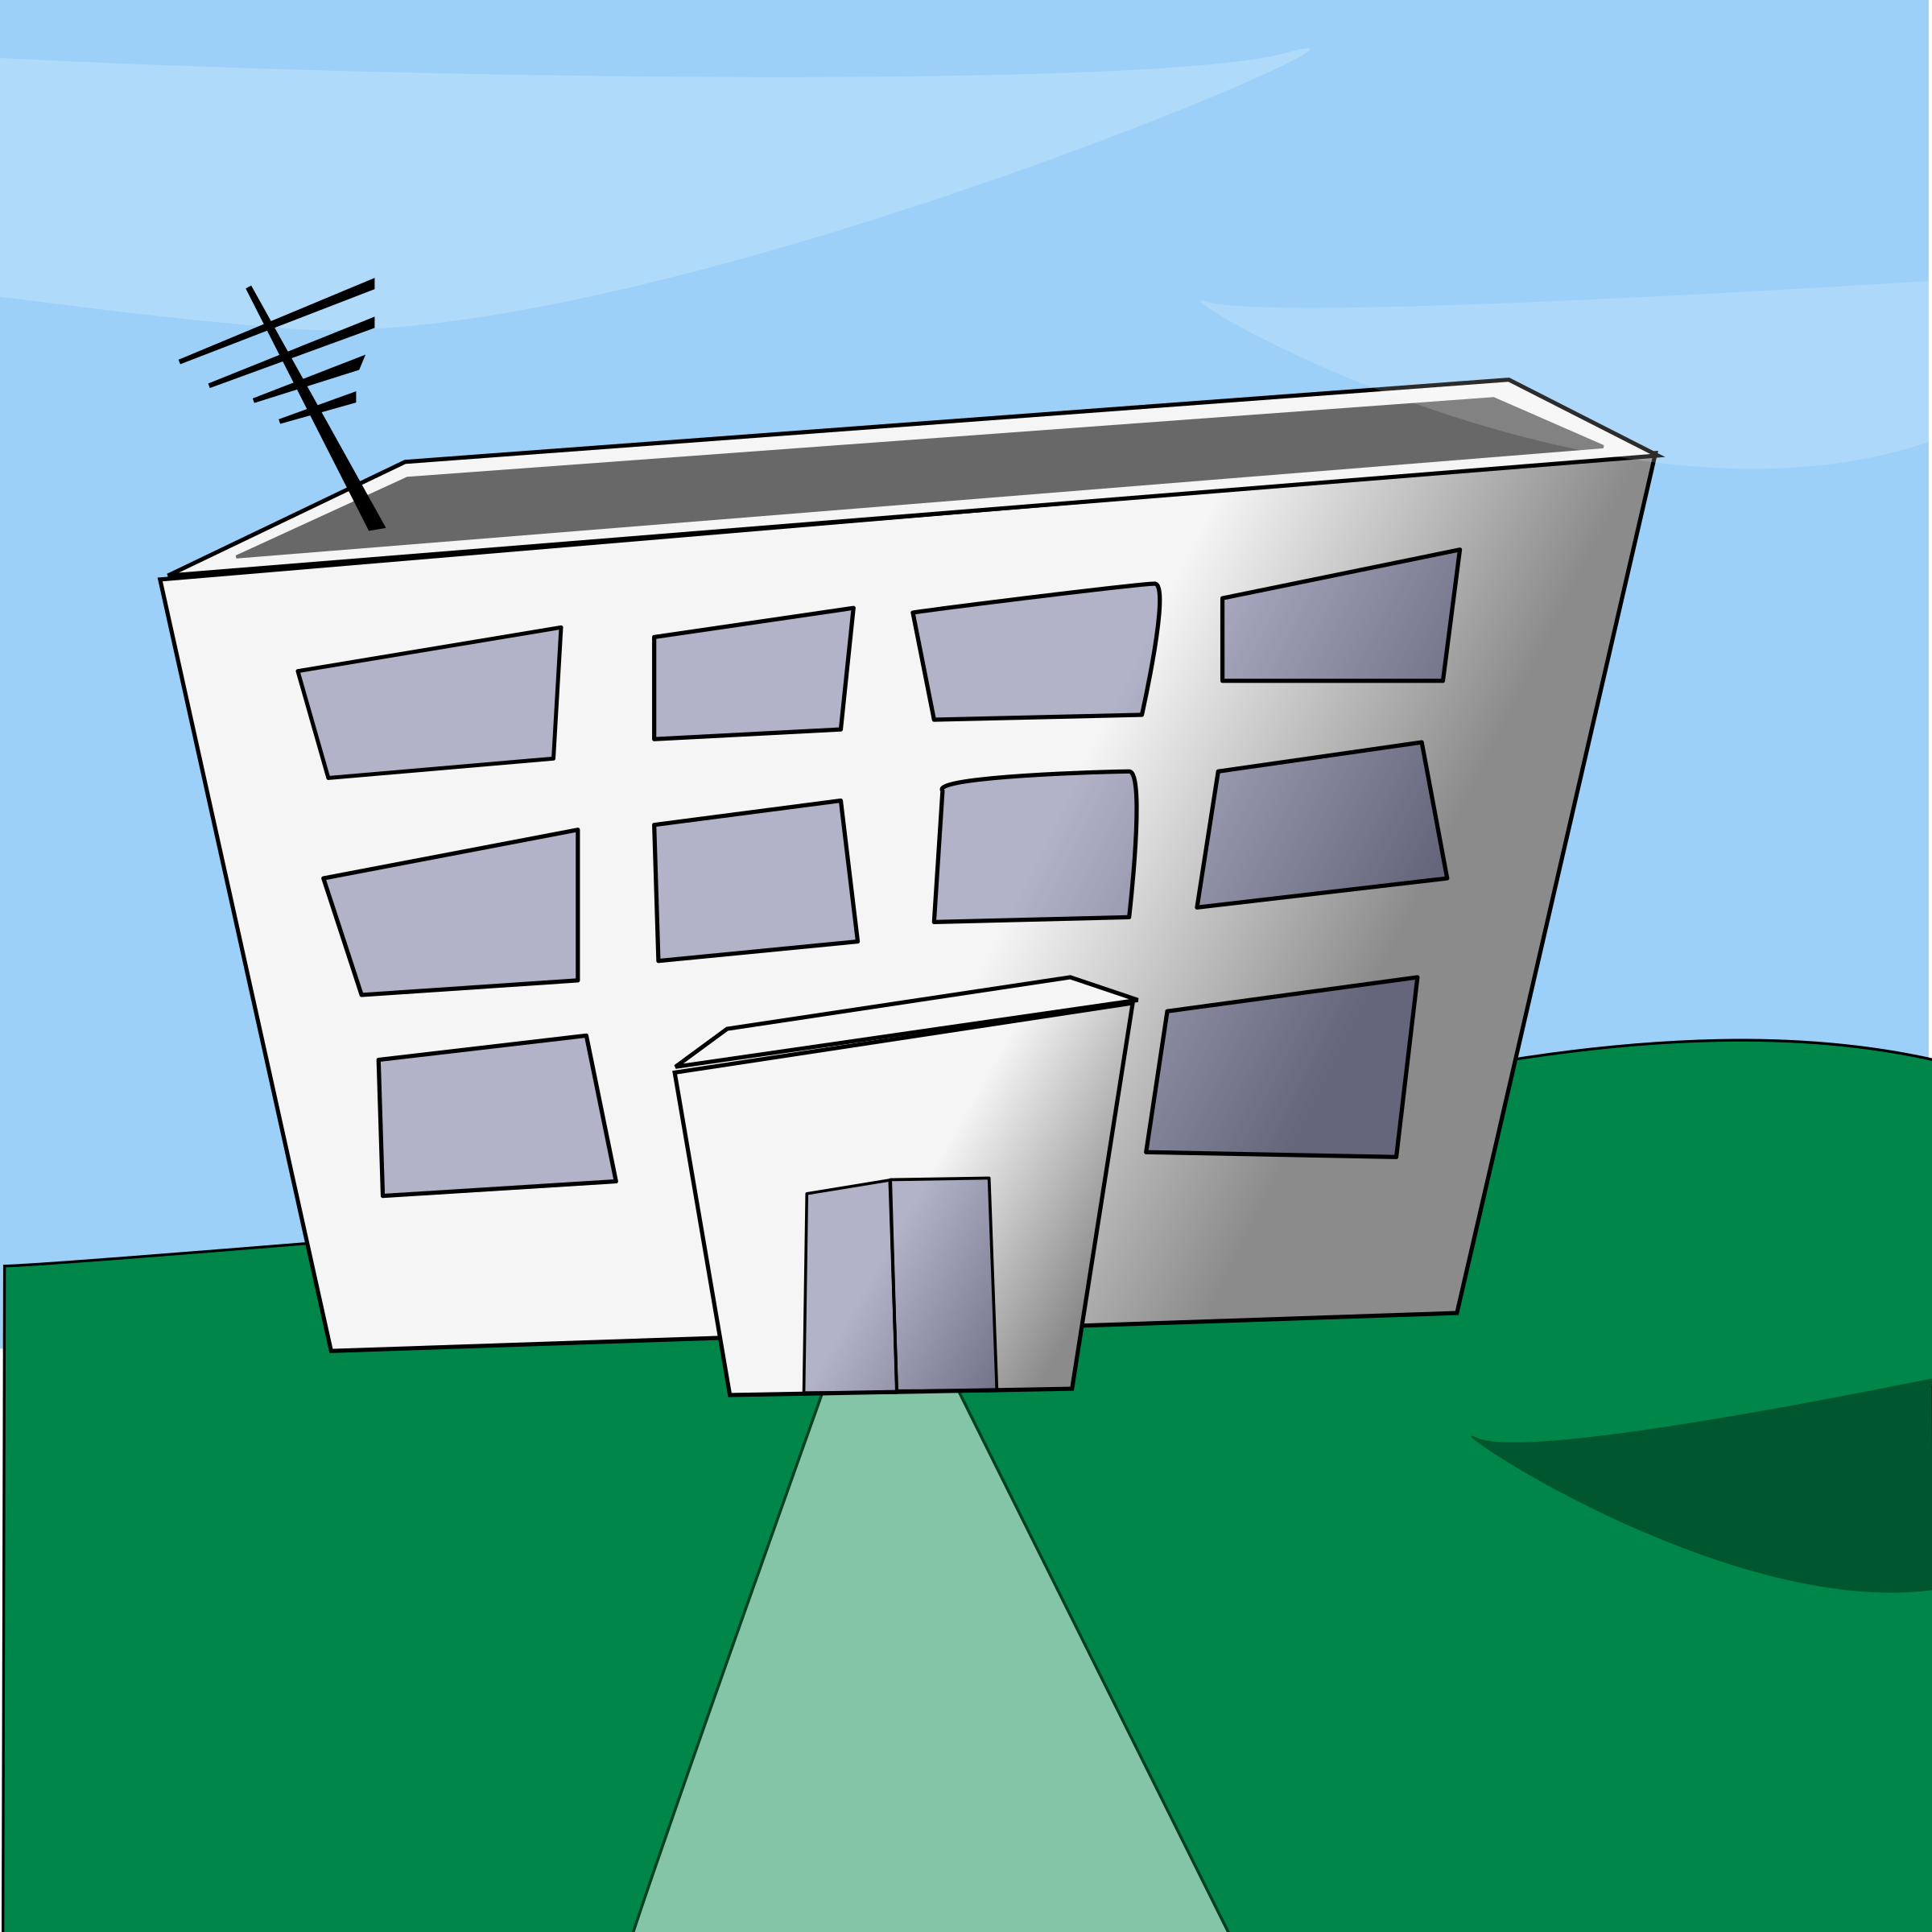 Download Office Building Cartoon Png Download Cartoon Building Png Image With No Background Pngkey Com